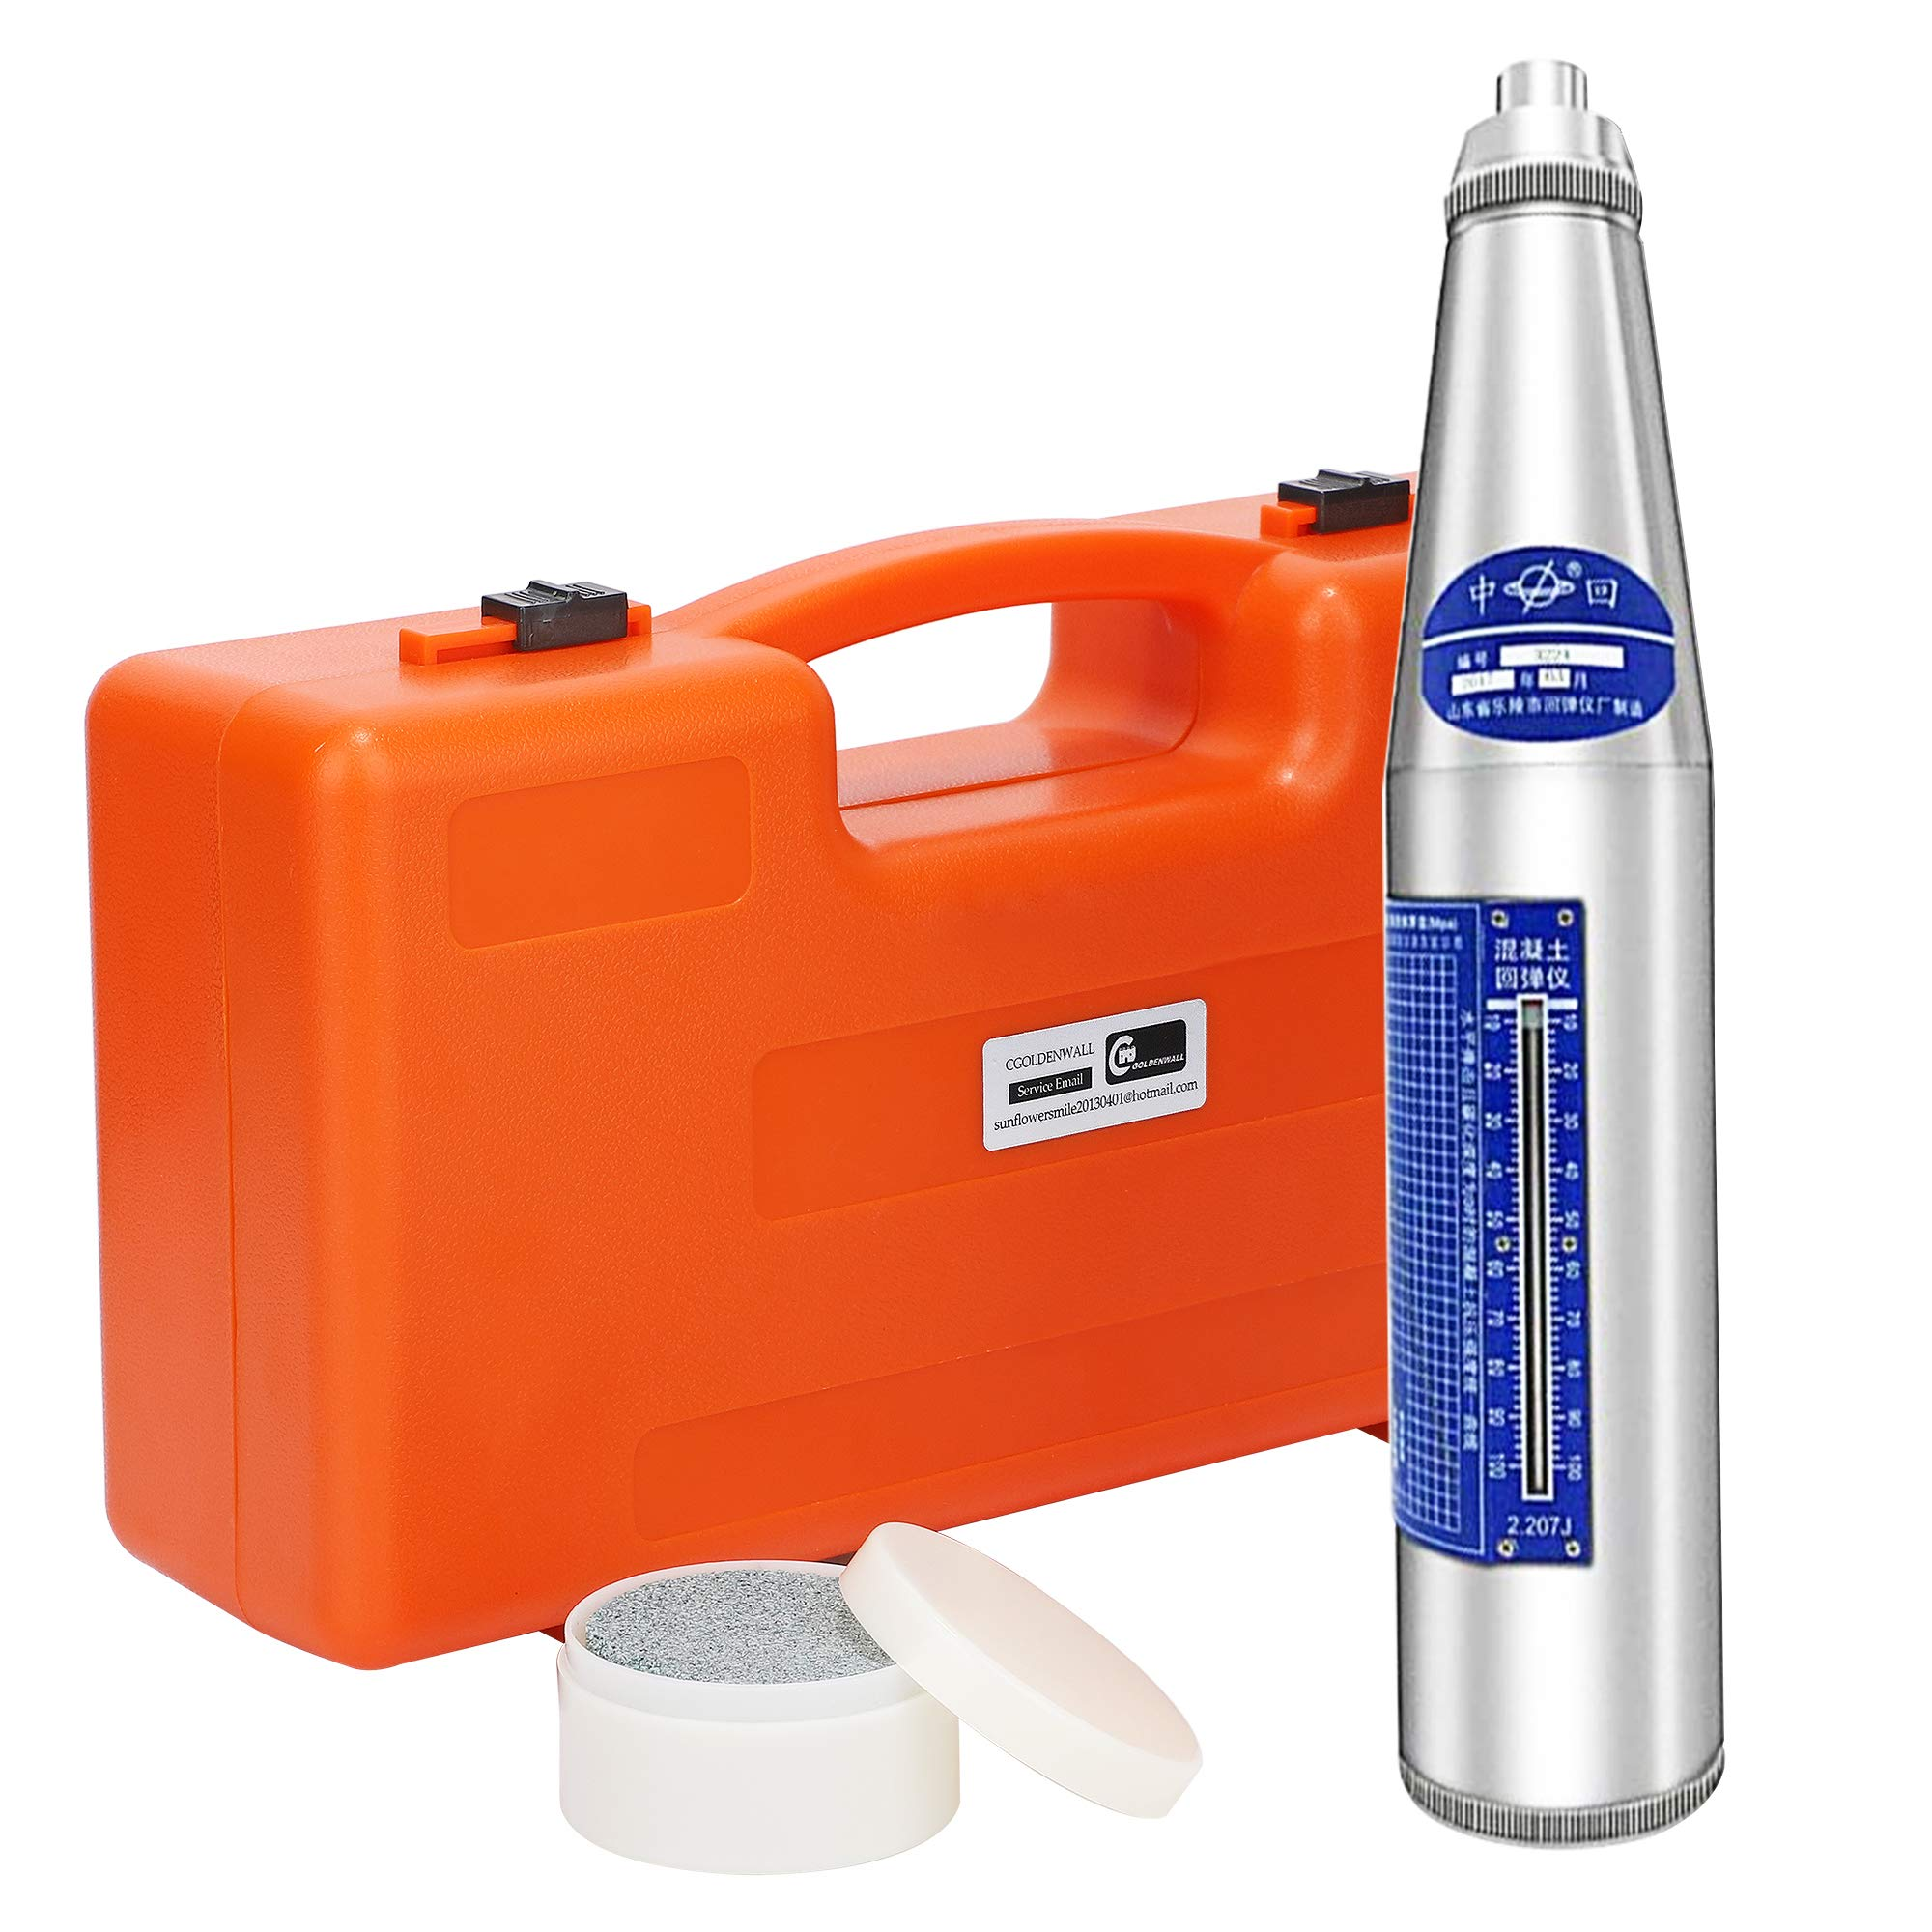 CGOLDENWALL Concrete Rebound Hammer Tester Resiliometer Tester Meter Tool within the Scope of 10-60Mpa ZC3-A Calibration Certificated and English Instruction